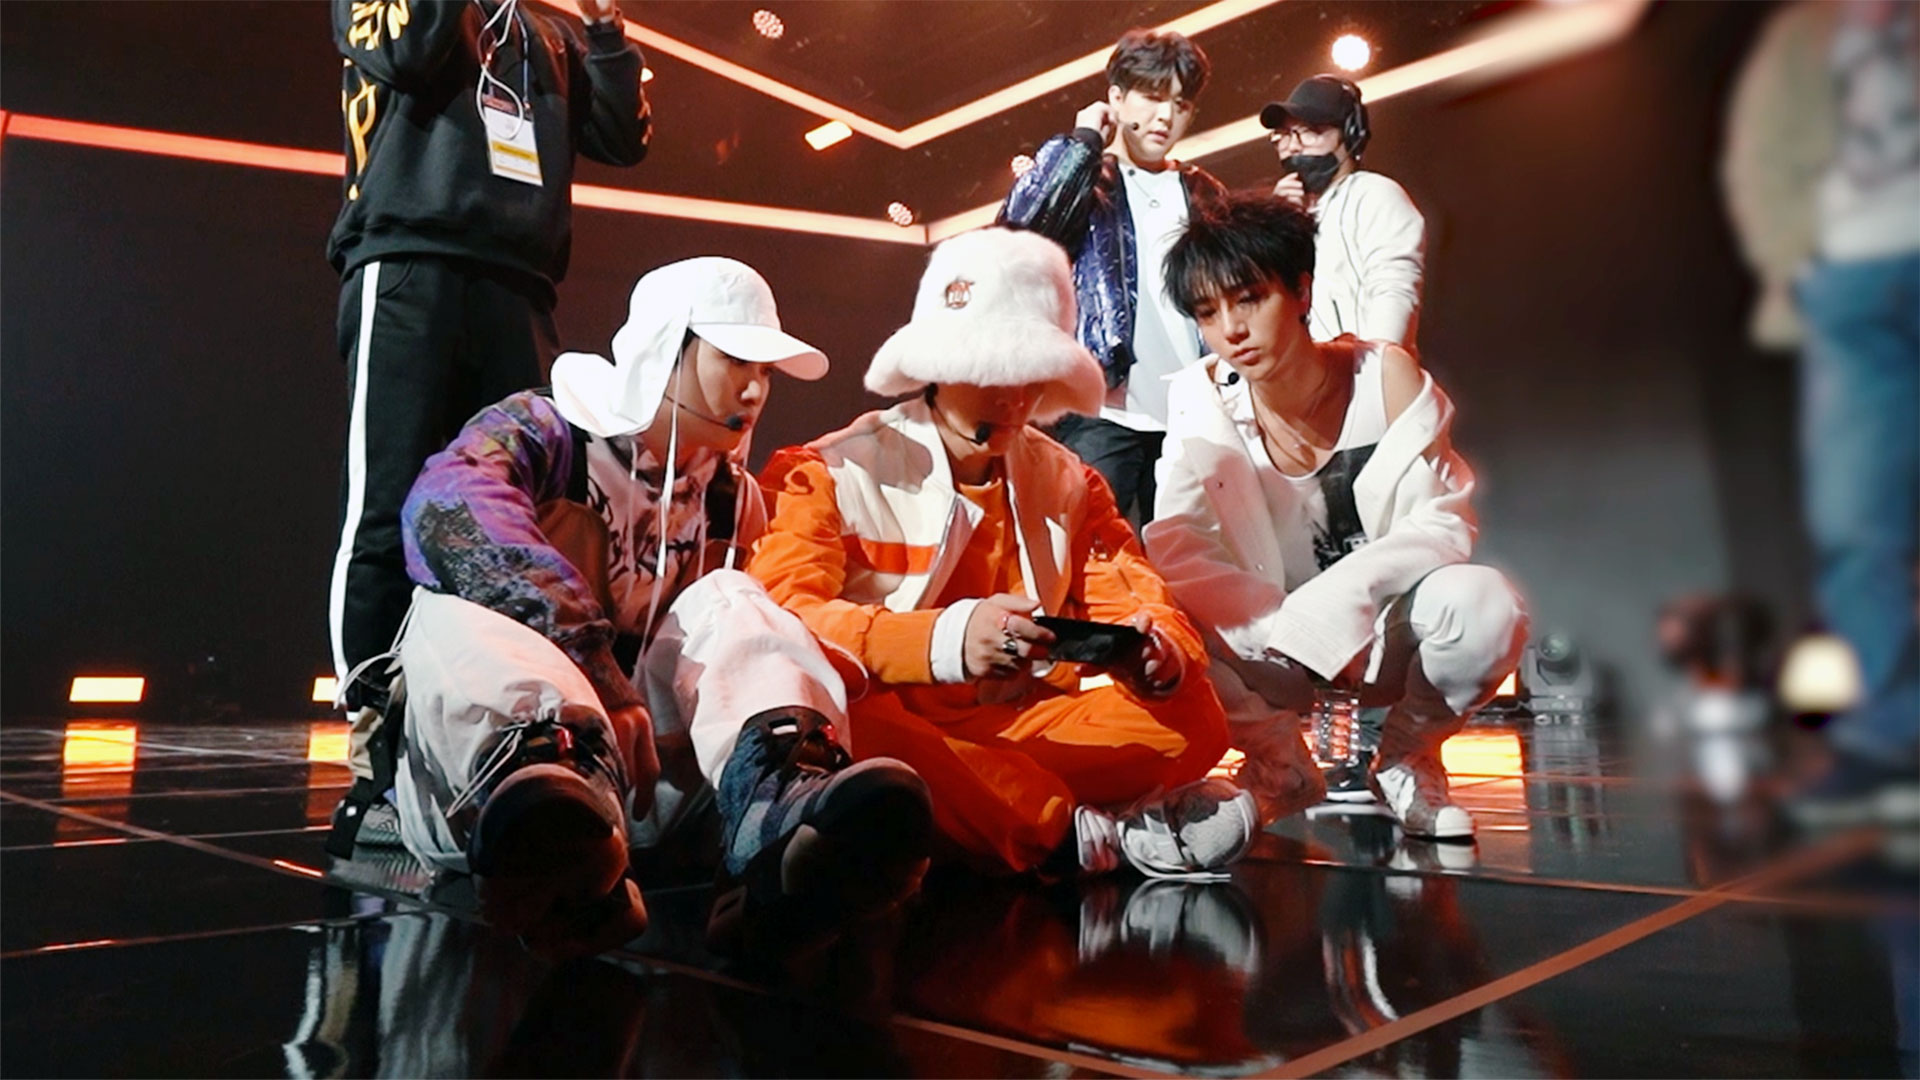 SUPER JUNIOR THE STAGE Behind The Scene